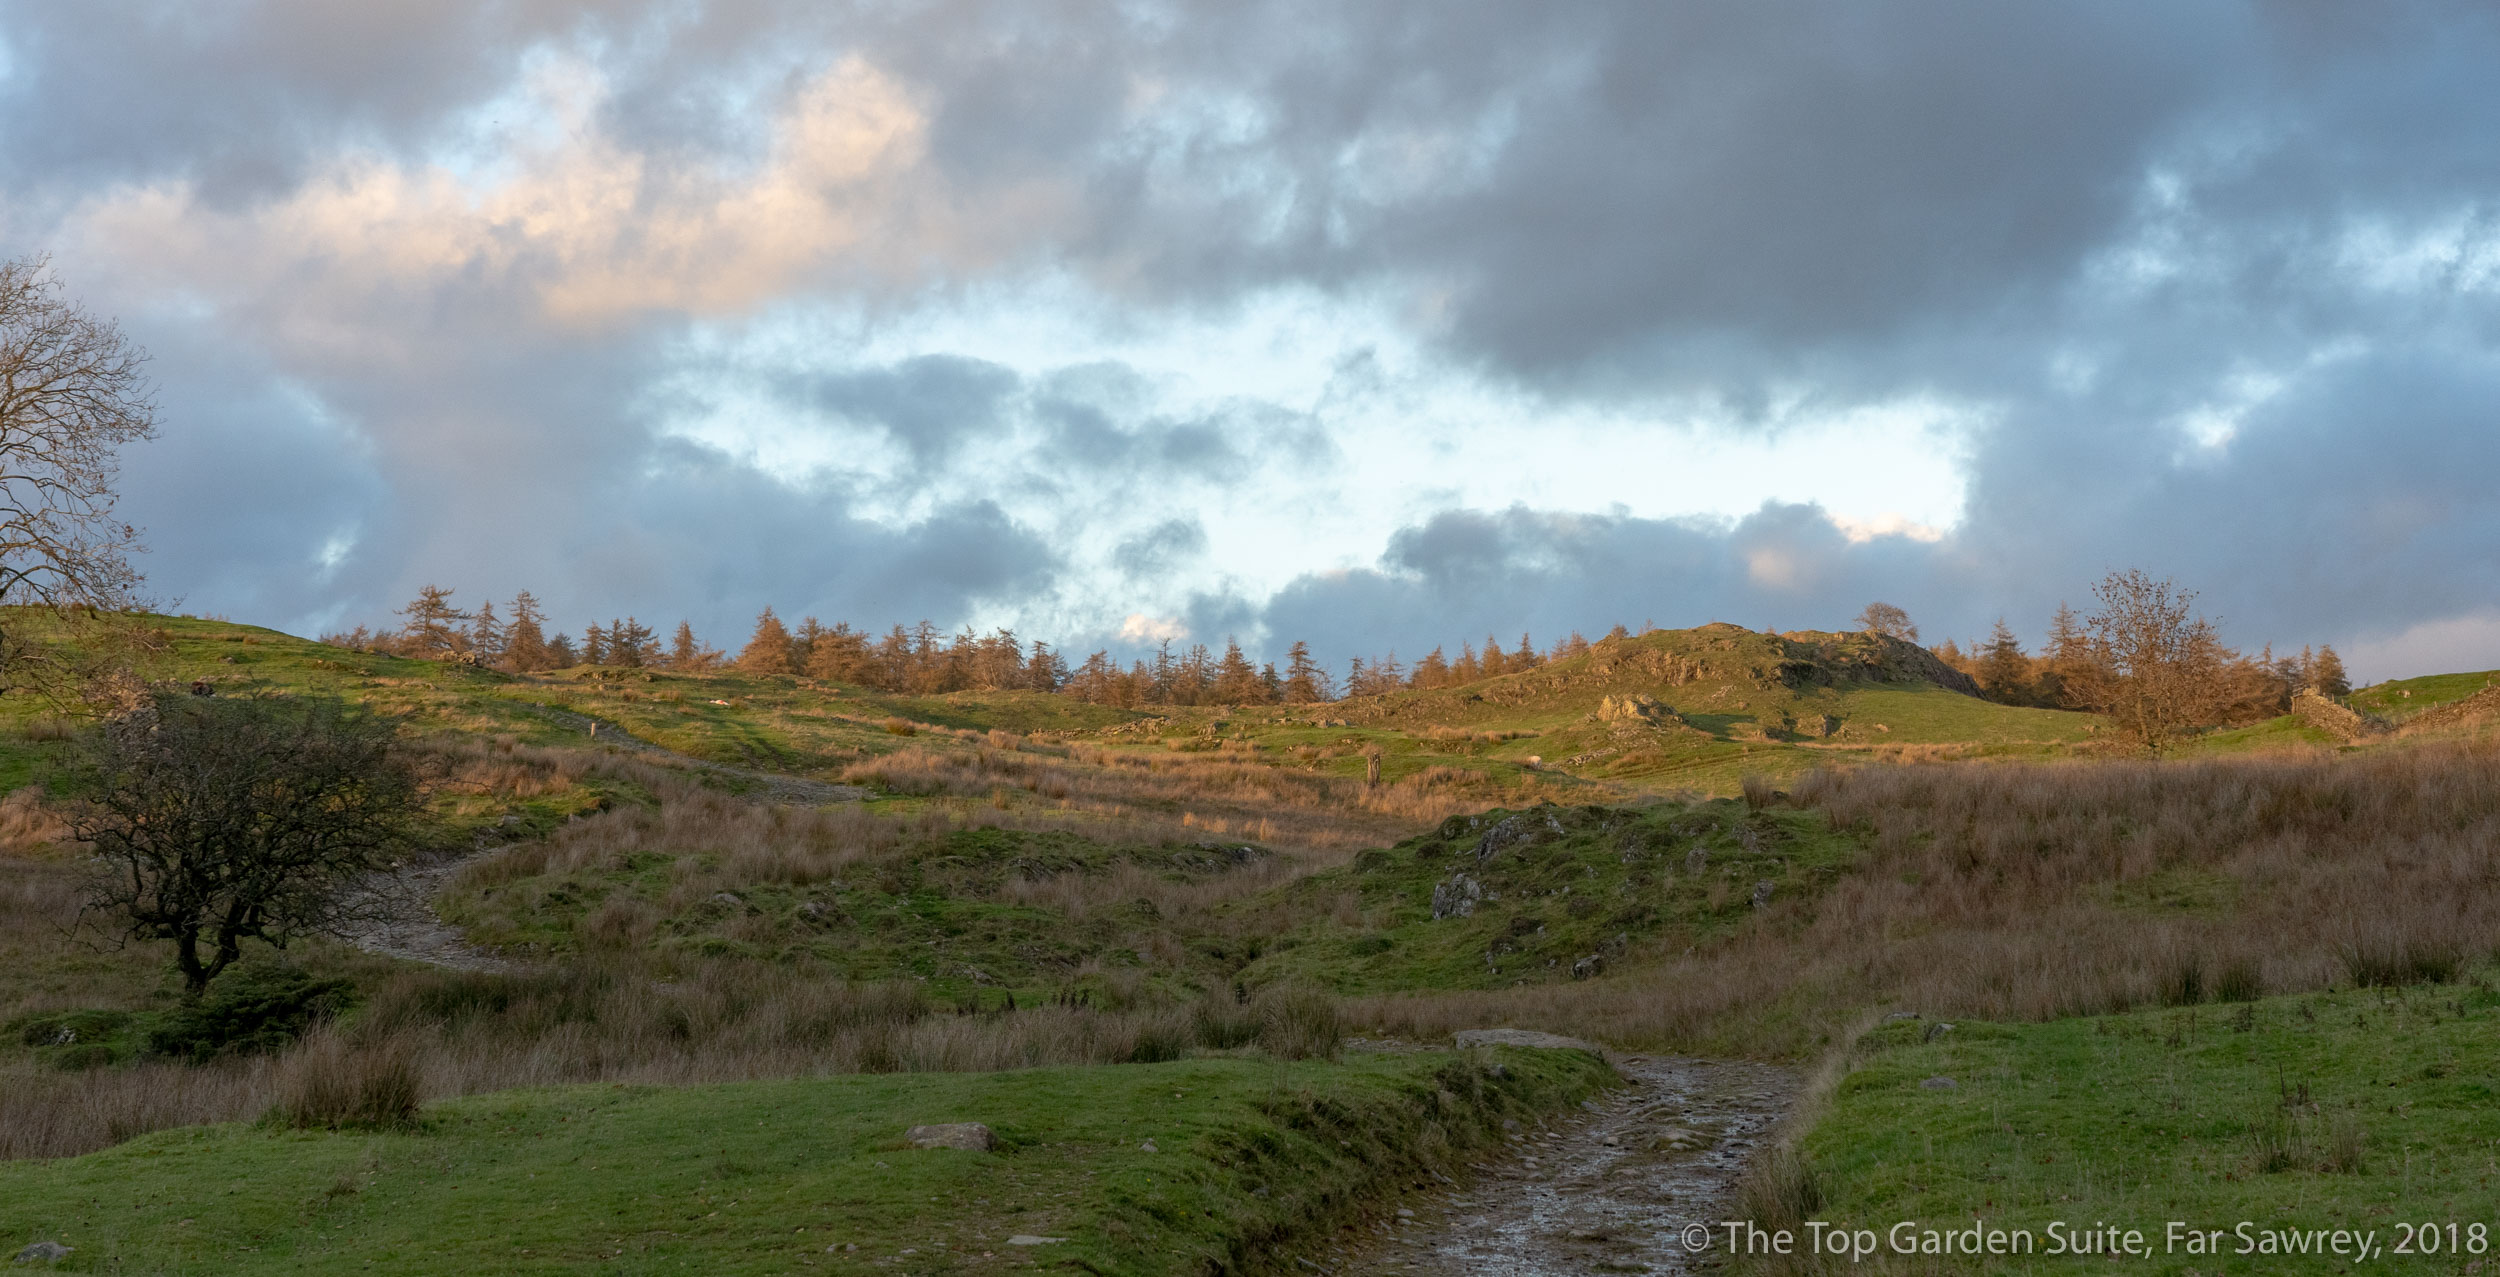 The path from Moss Eccles Tarn